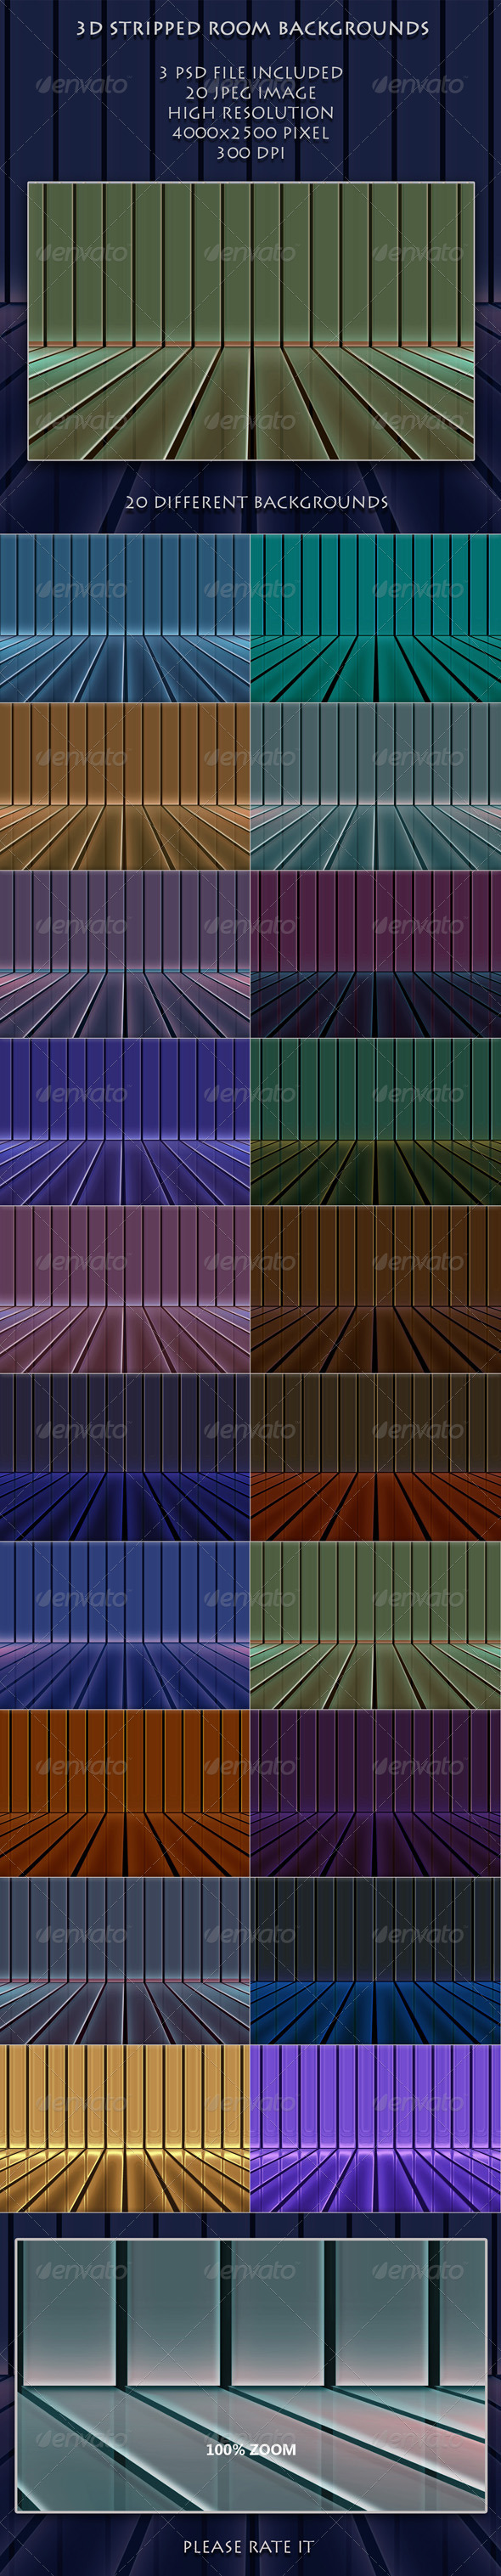 GraphicRiver 3D Striped Room Backgrounds 4569339